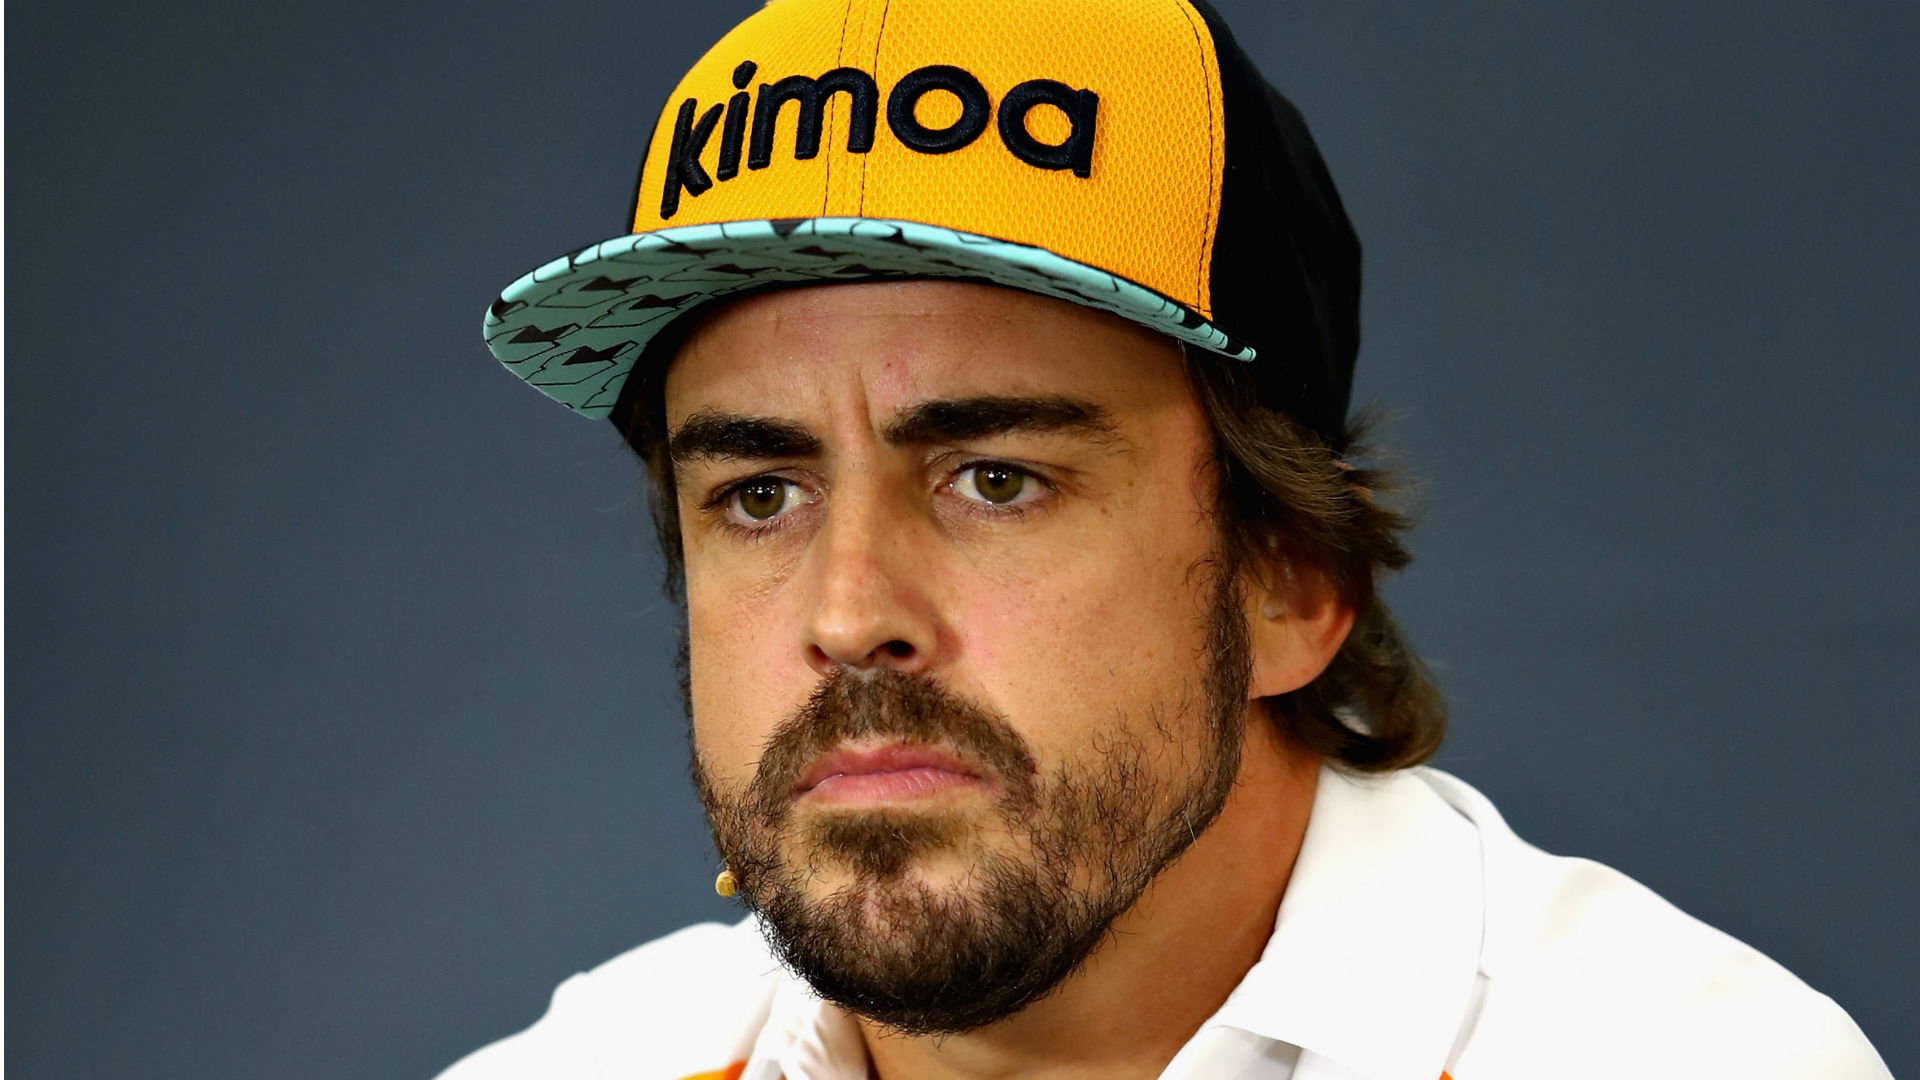 Alonso rejected chance to join Red Bull